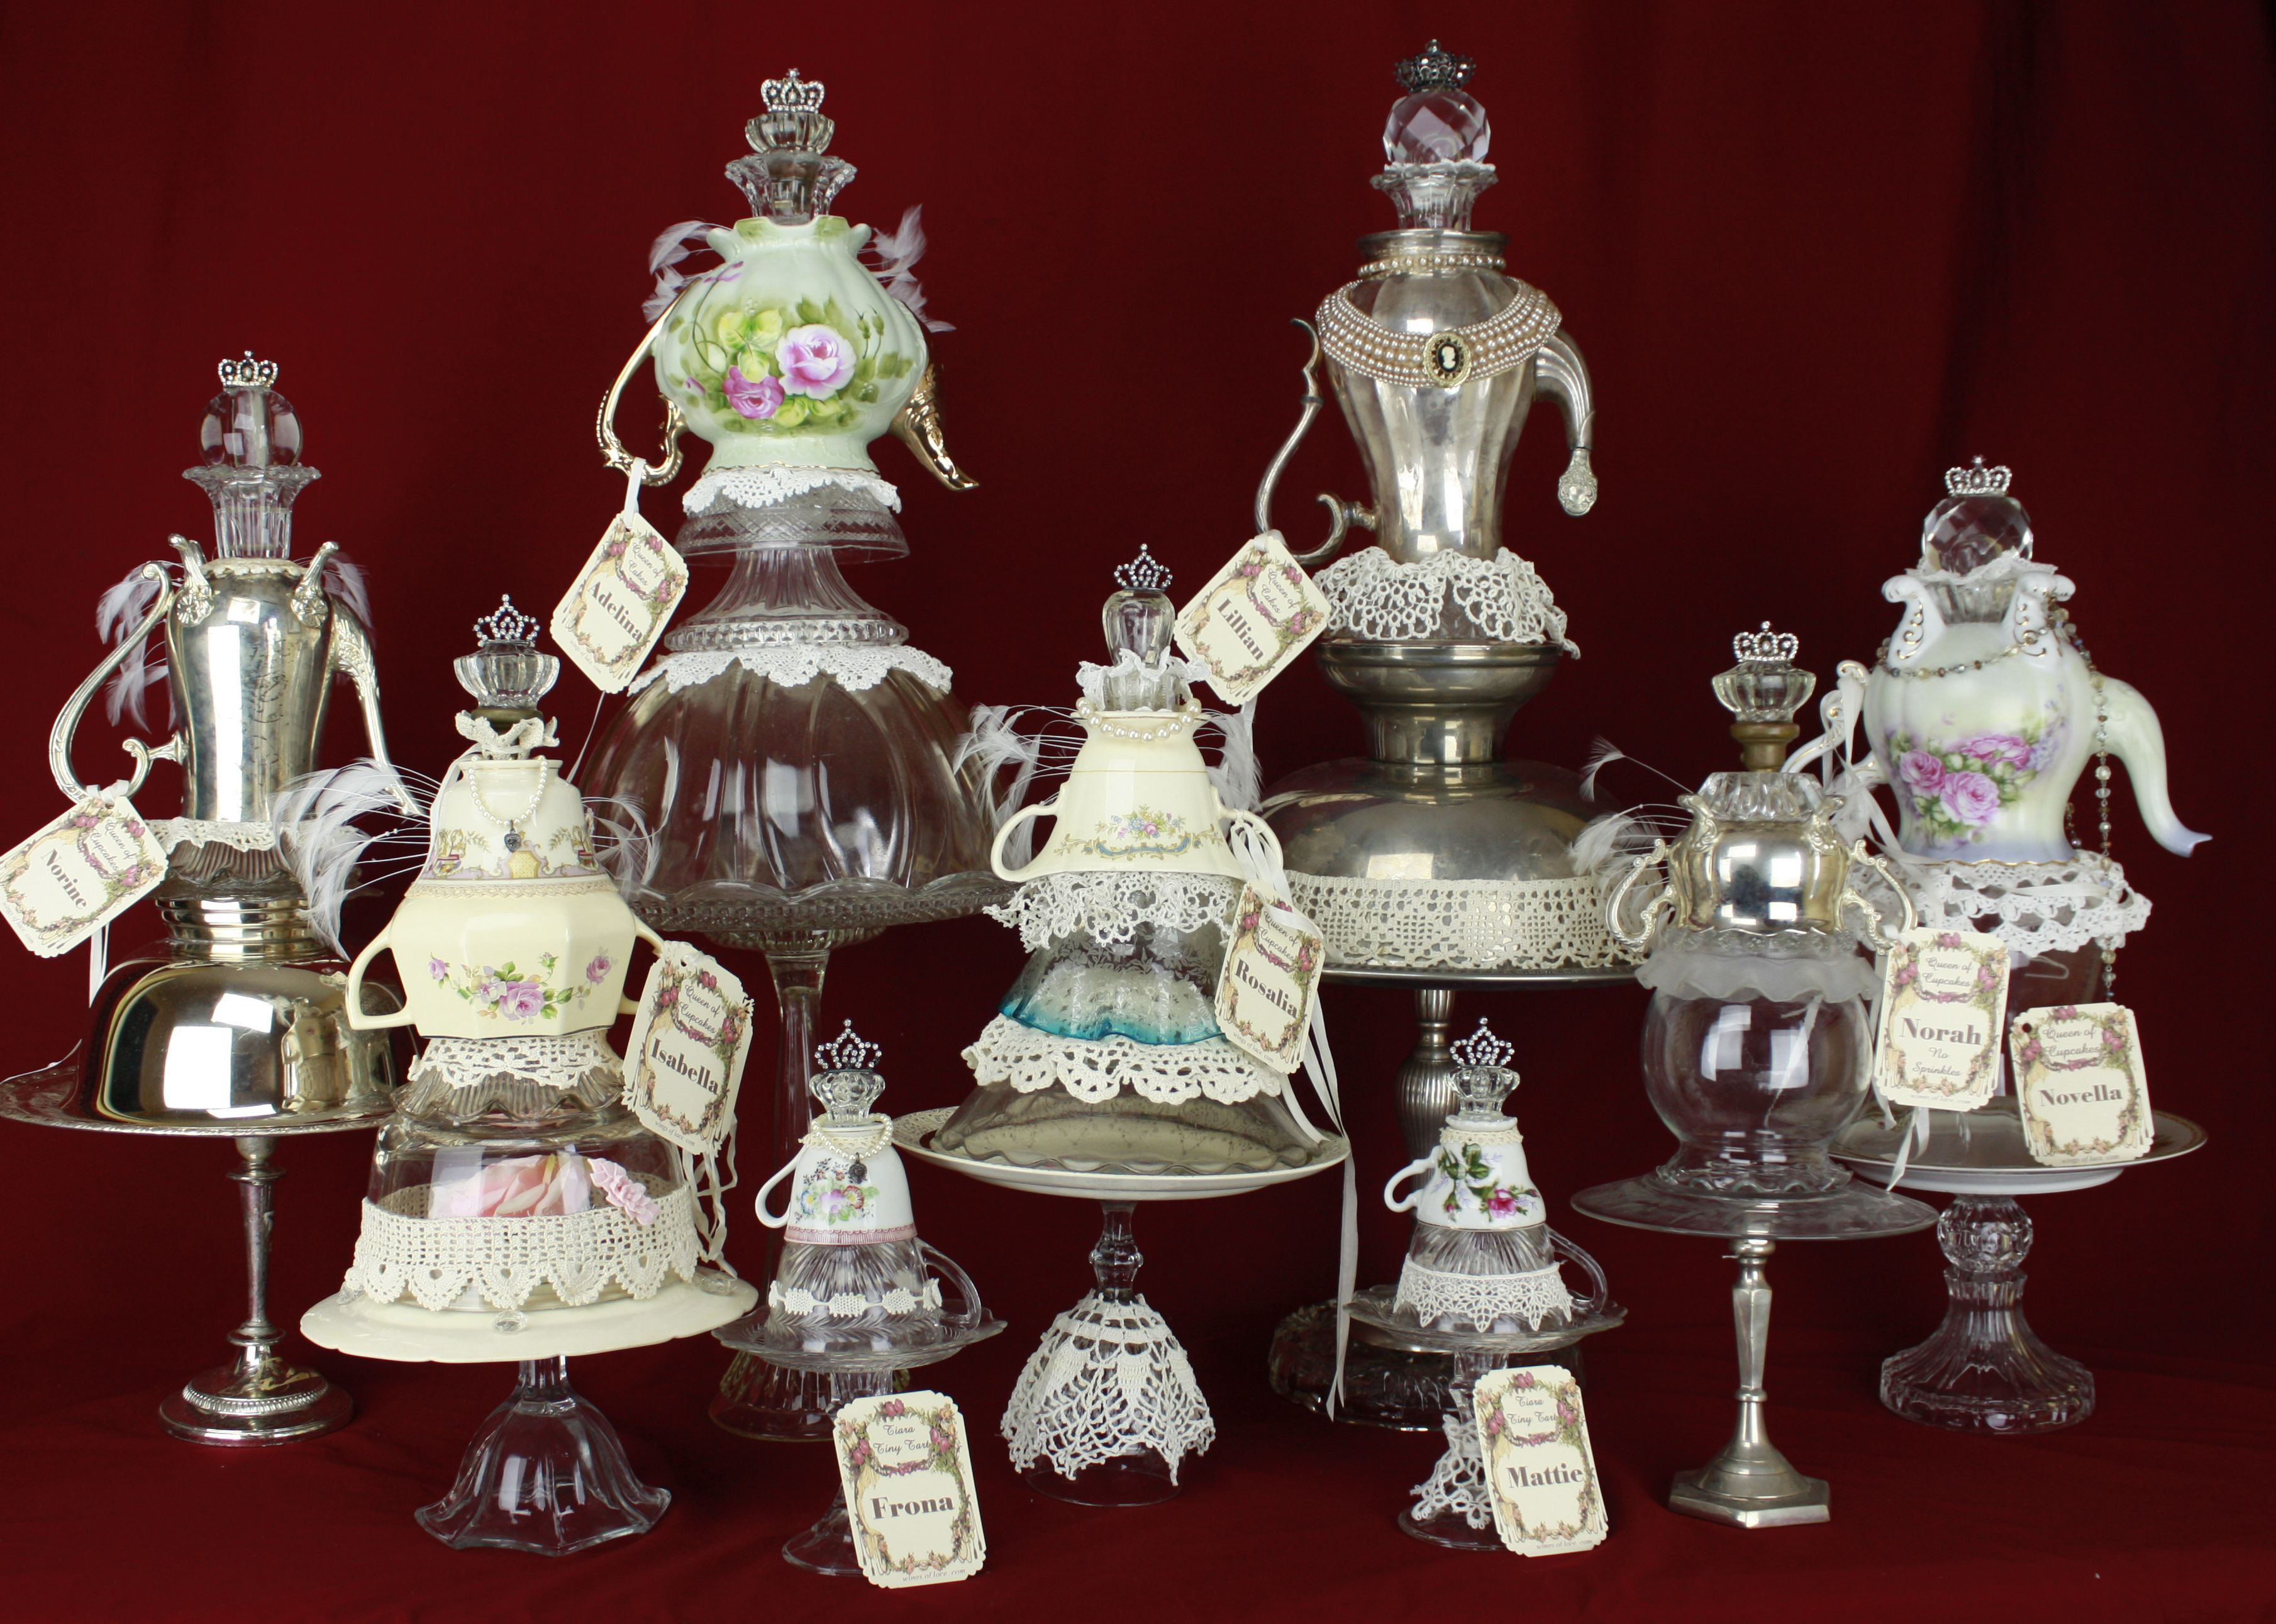 Look What Lexa from Wings of Lace is bringing to the Vintage Marketplace is June! Cupcake, Tart Stands made with silver, porcelain and glass dishes and candlesticks.